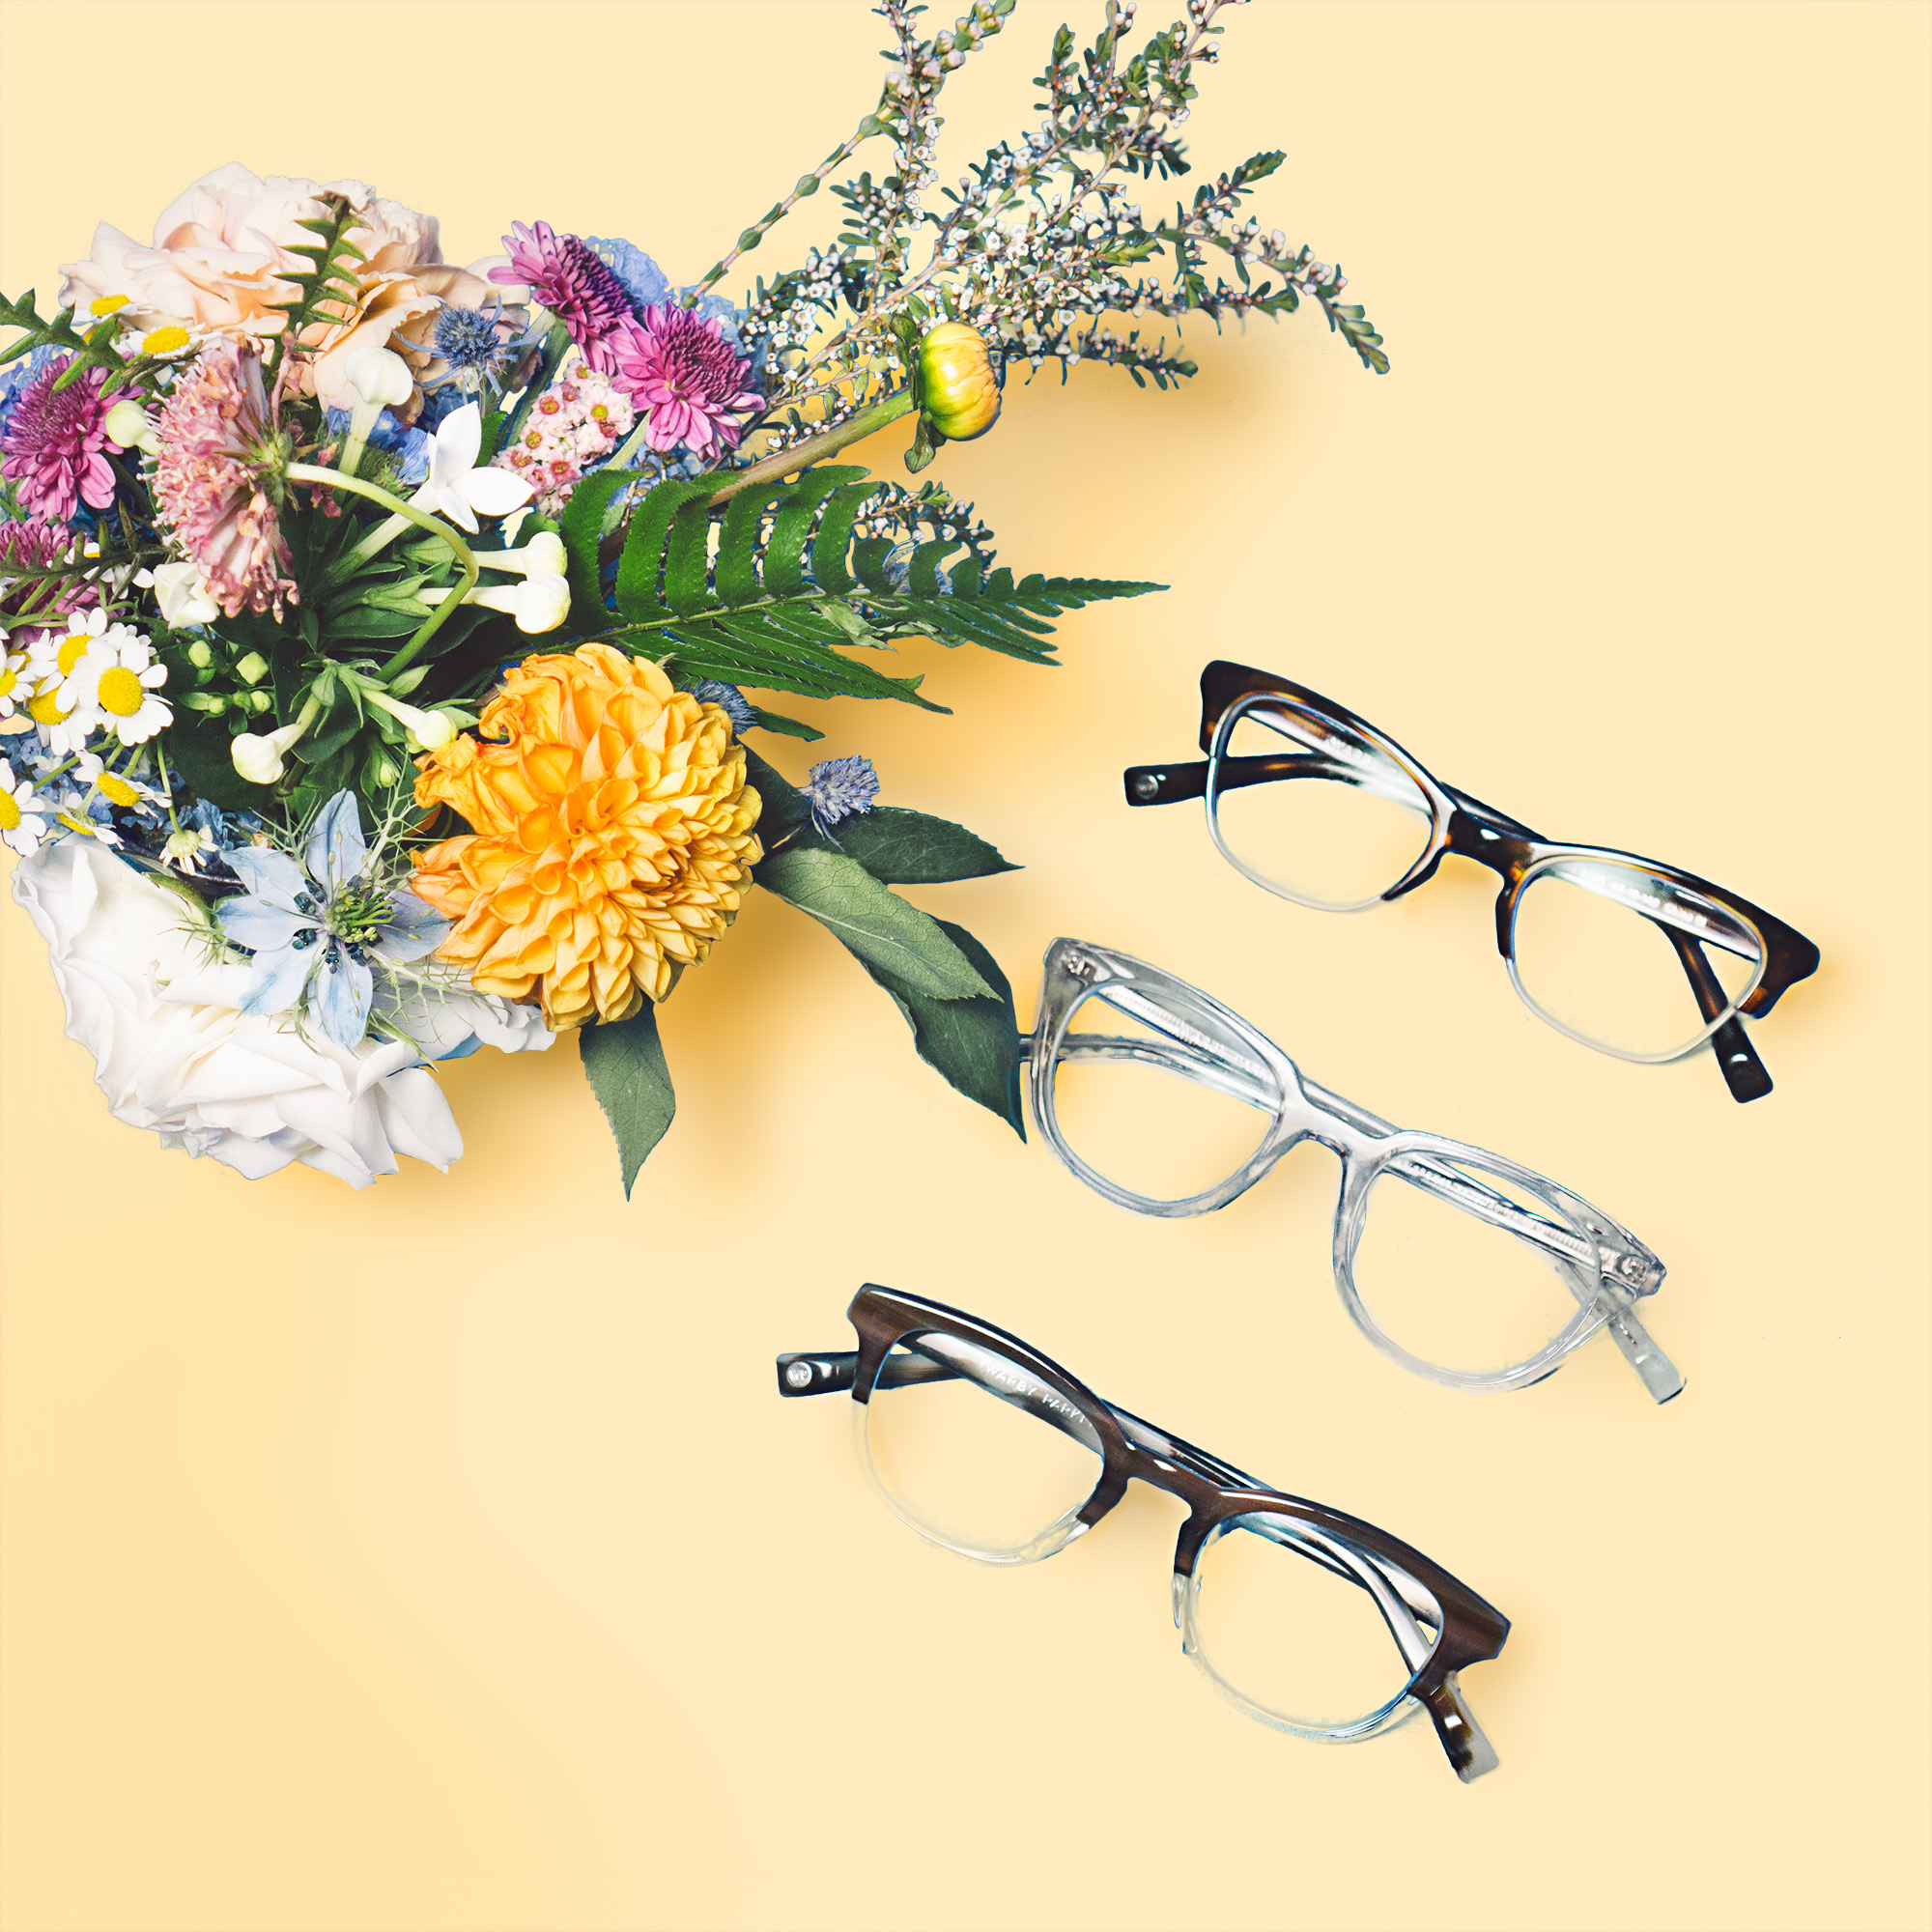 f0337e3d0ebb Seeing Summer Better With Warby Parker — Ardent Reverie